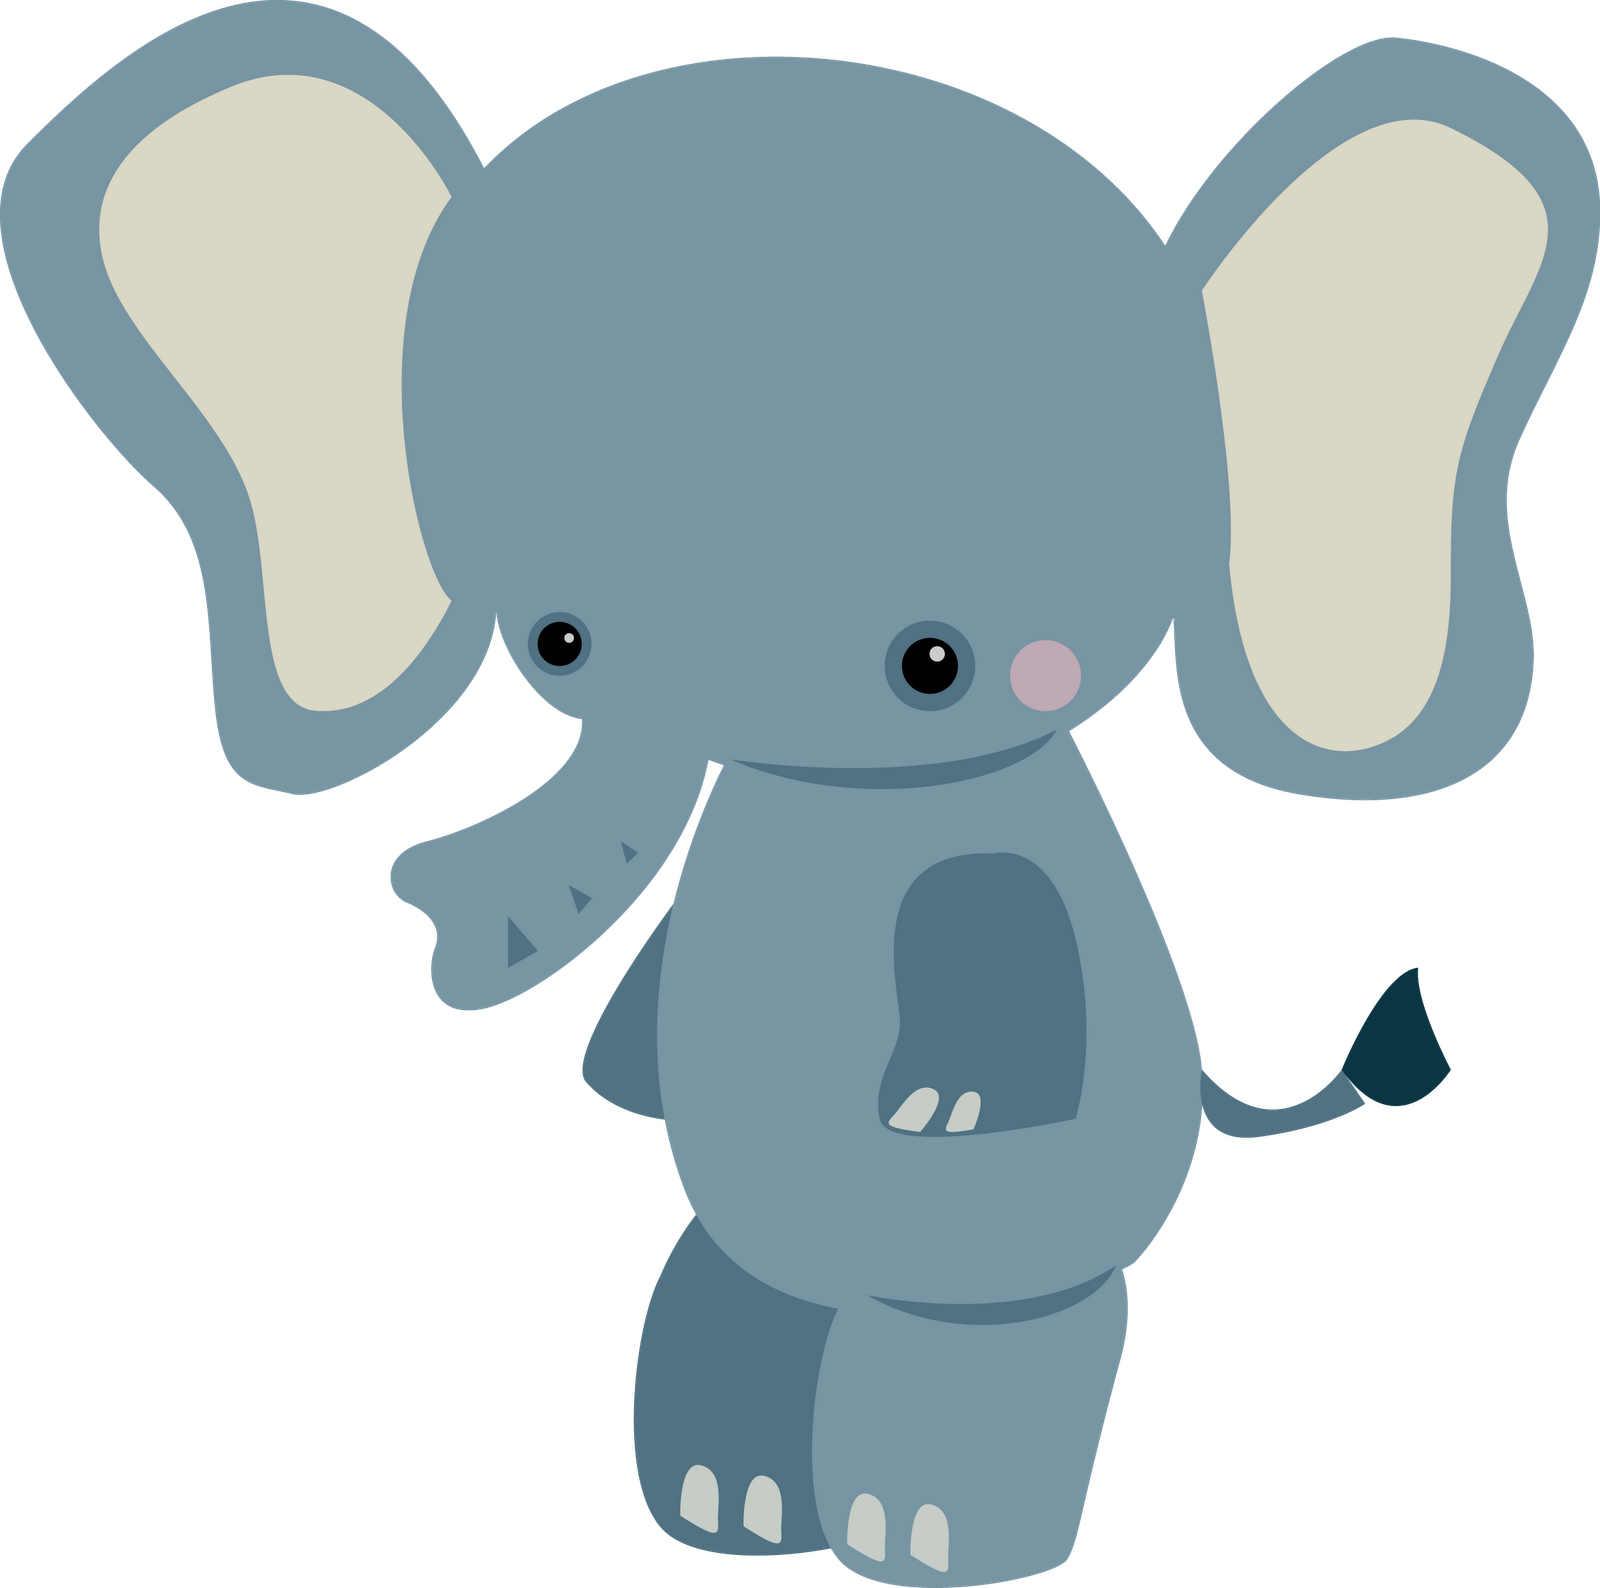 Baby elephant clip art. Woodland clipart animal community